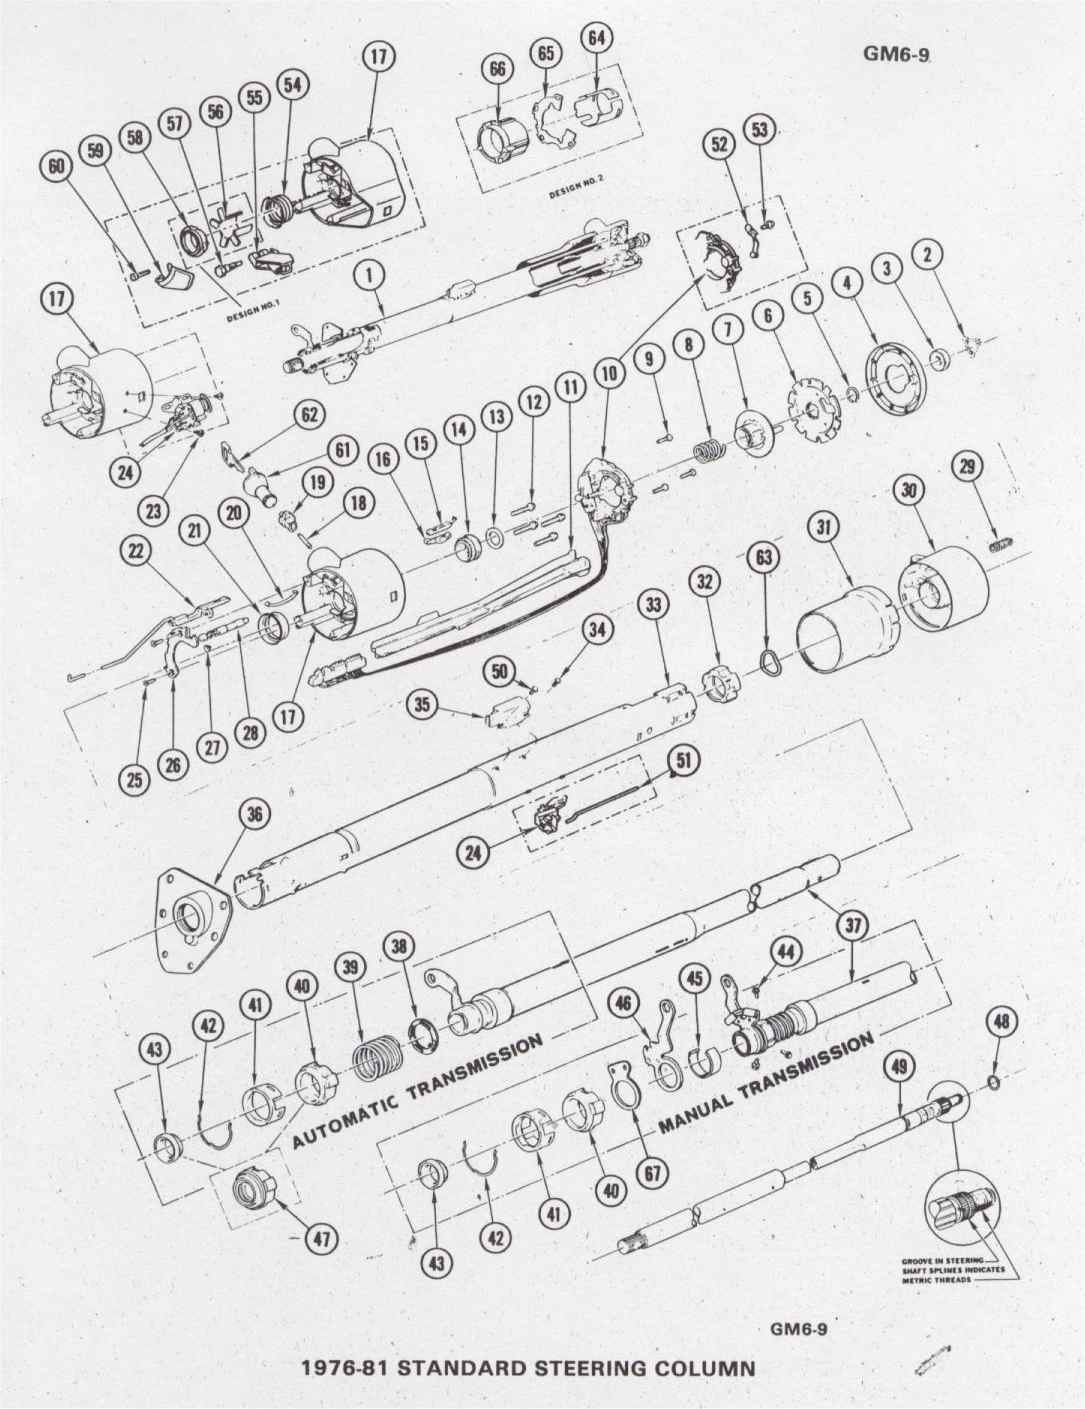 79 camaro steering column diagram wiring diagram u2022 rh ch ionapp co 1980 camaro steering column 85 camaro steering column diagram